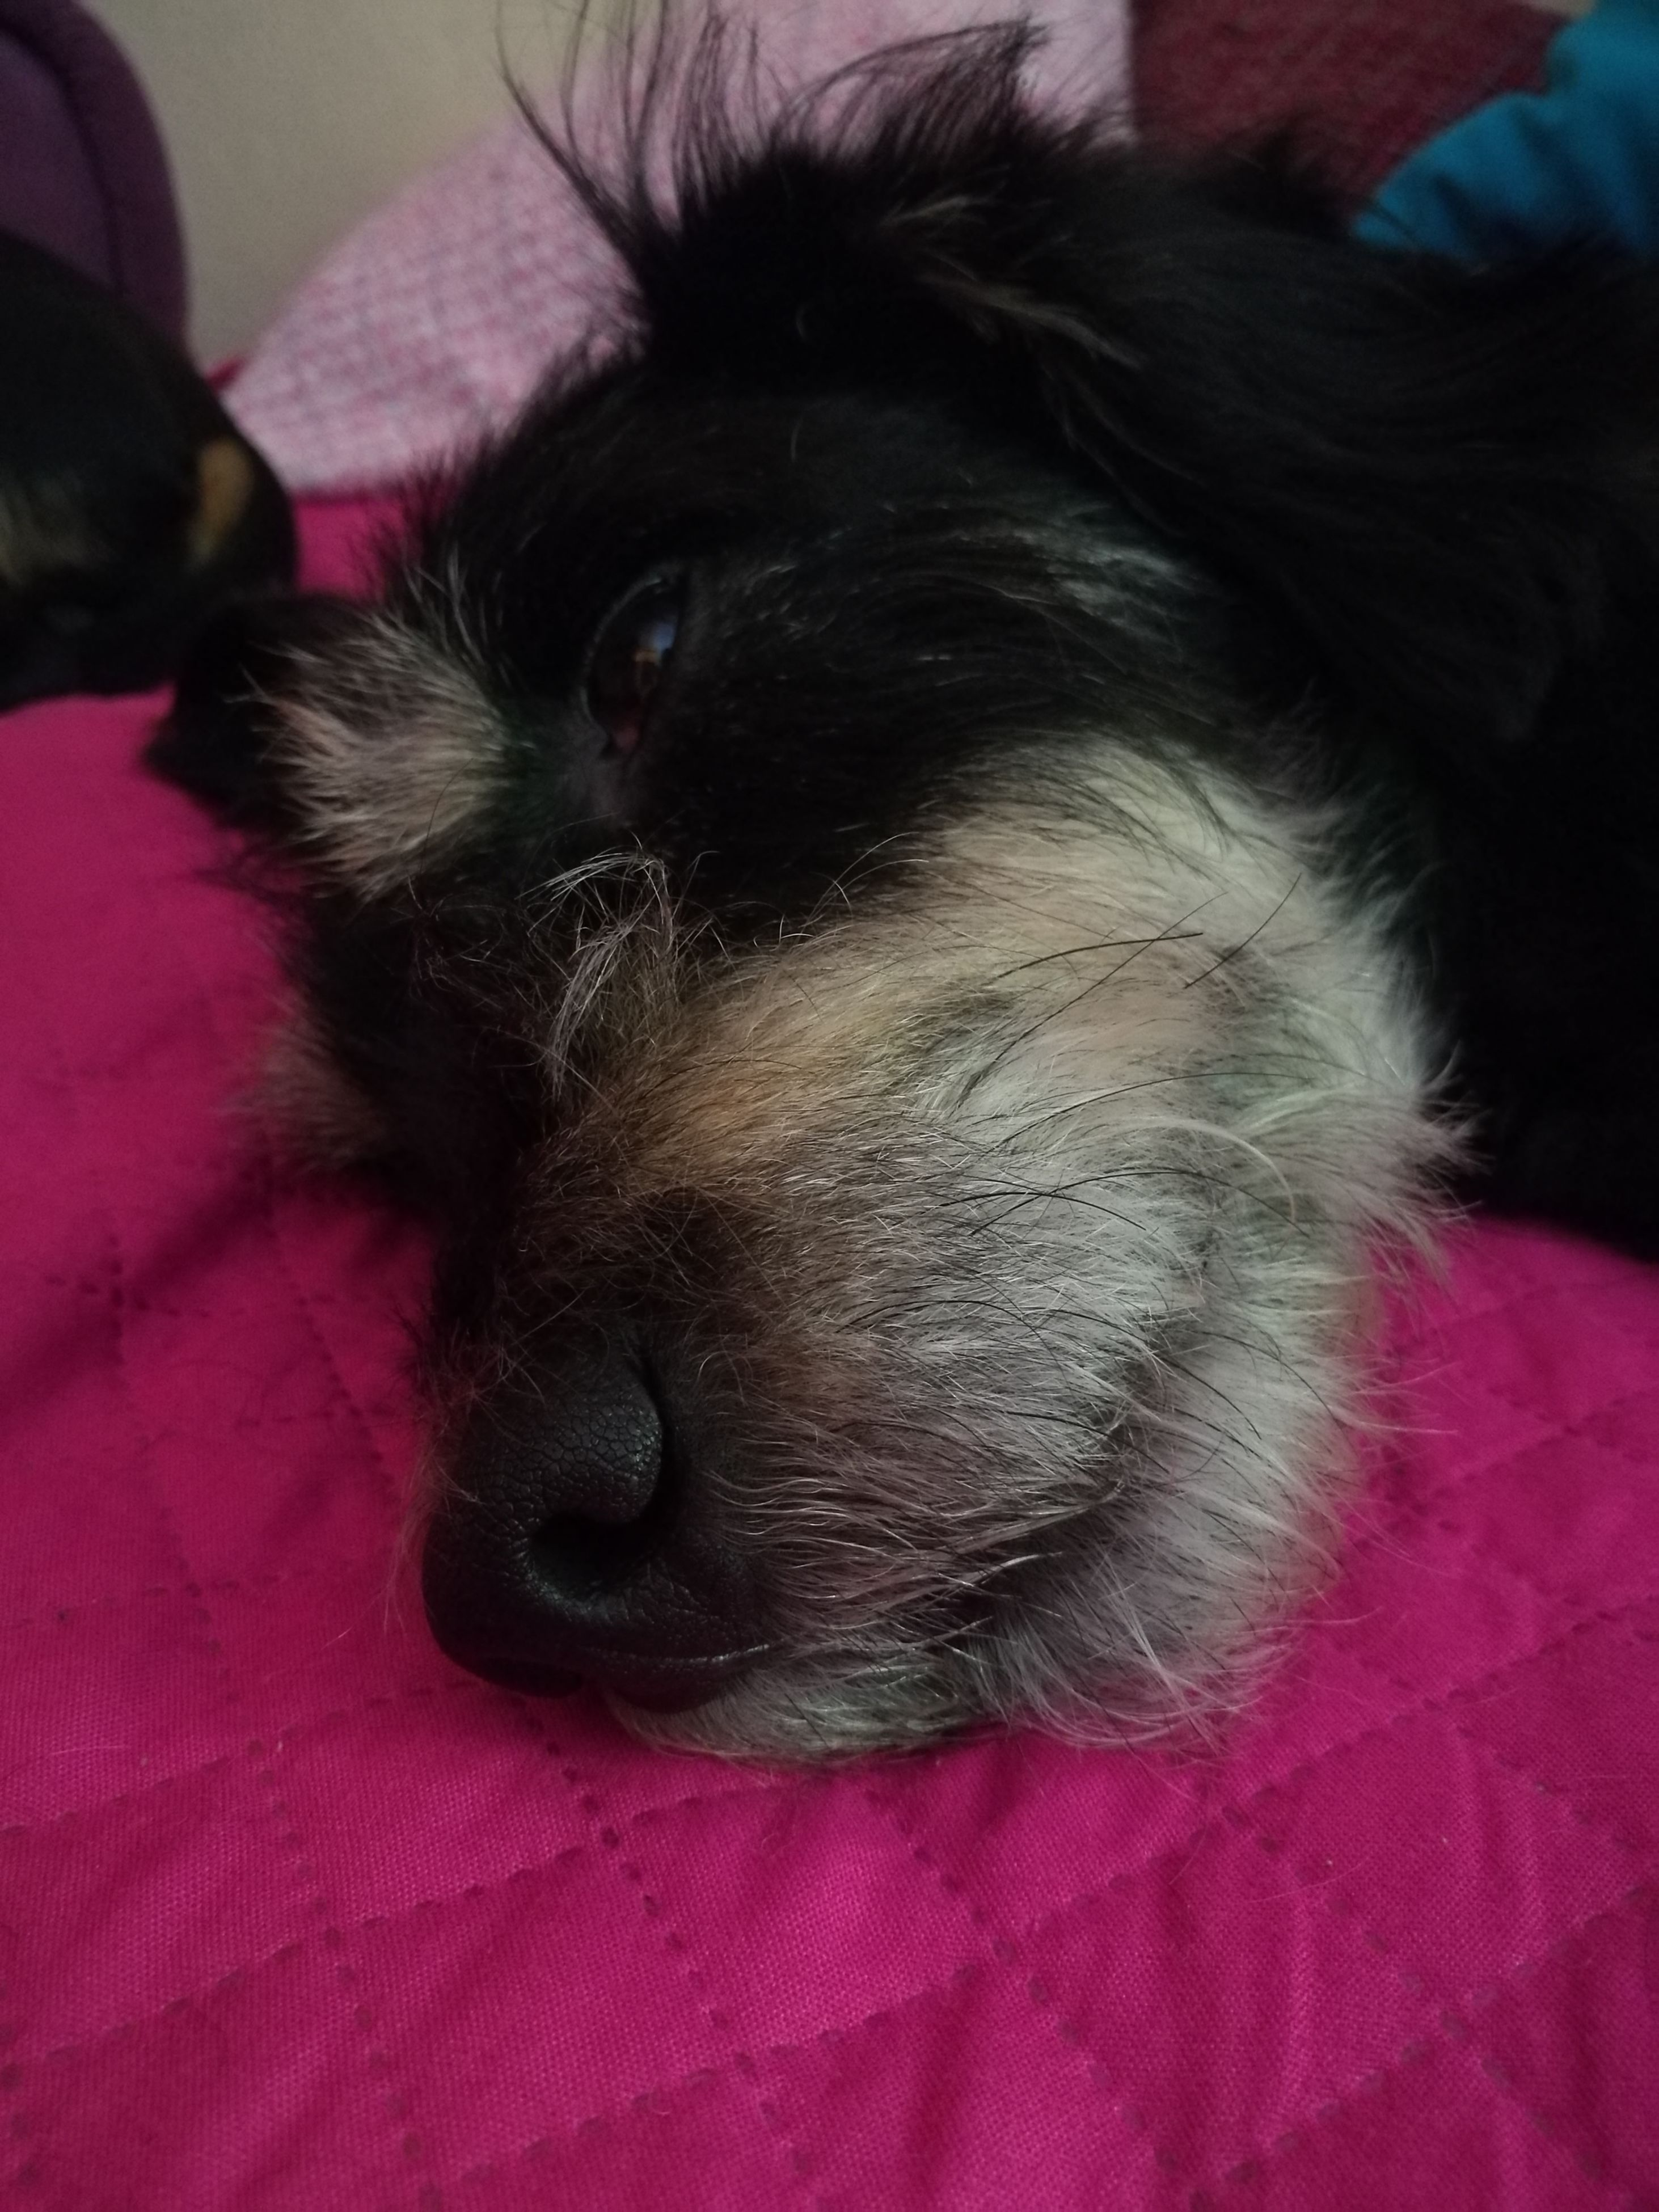 pets, domestic animals, animal themes, mammal, dog, relaxation, bed, resting, close-up, lying down, sofa, animal head, comfortable, animal body part, portrait, no people, animal hair, home, black color, focus on foreground, cute, whisker